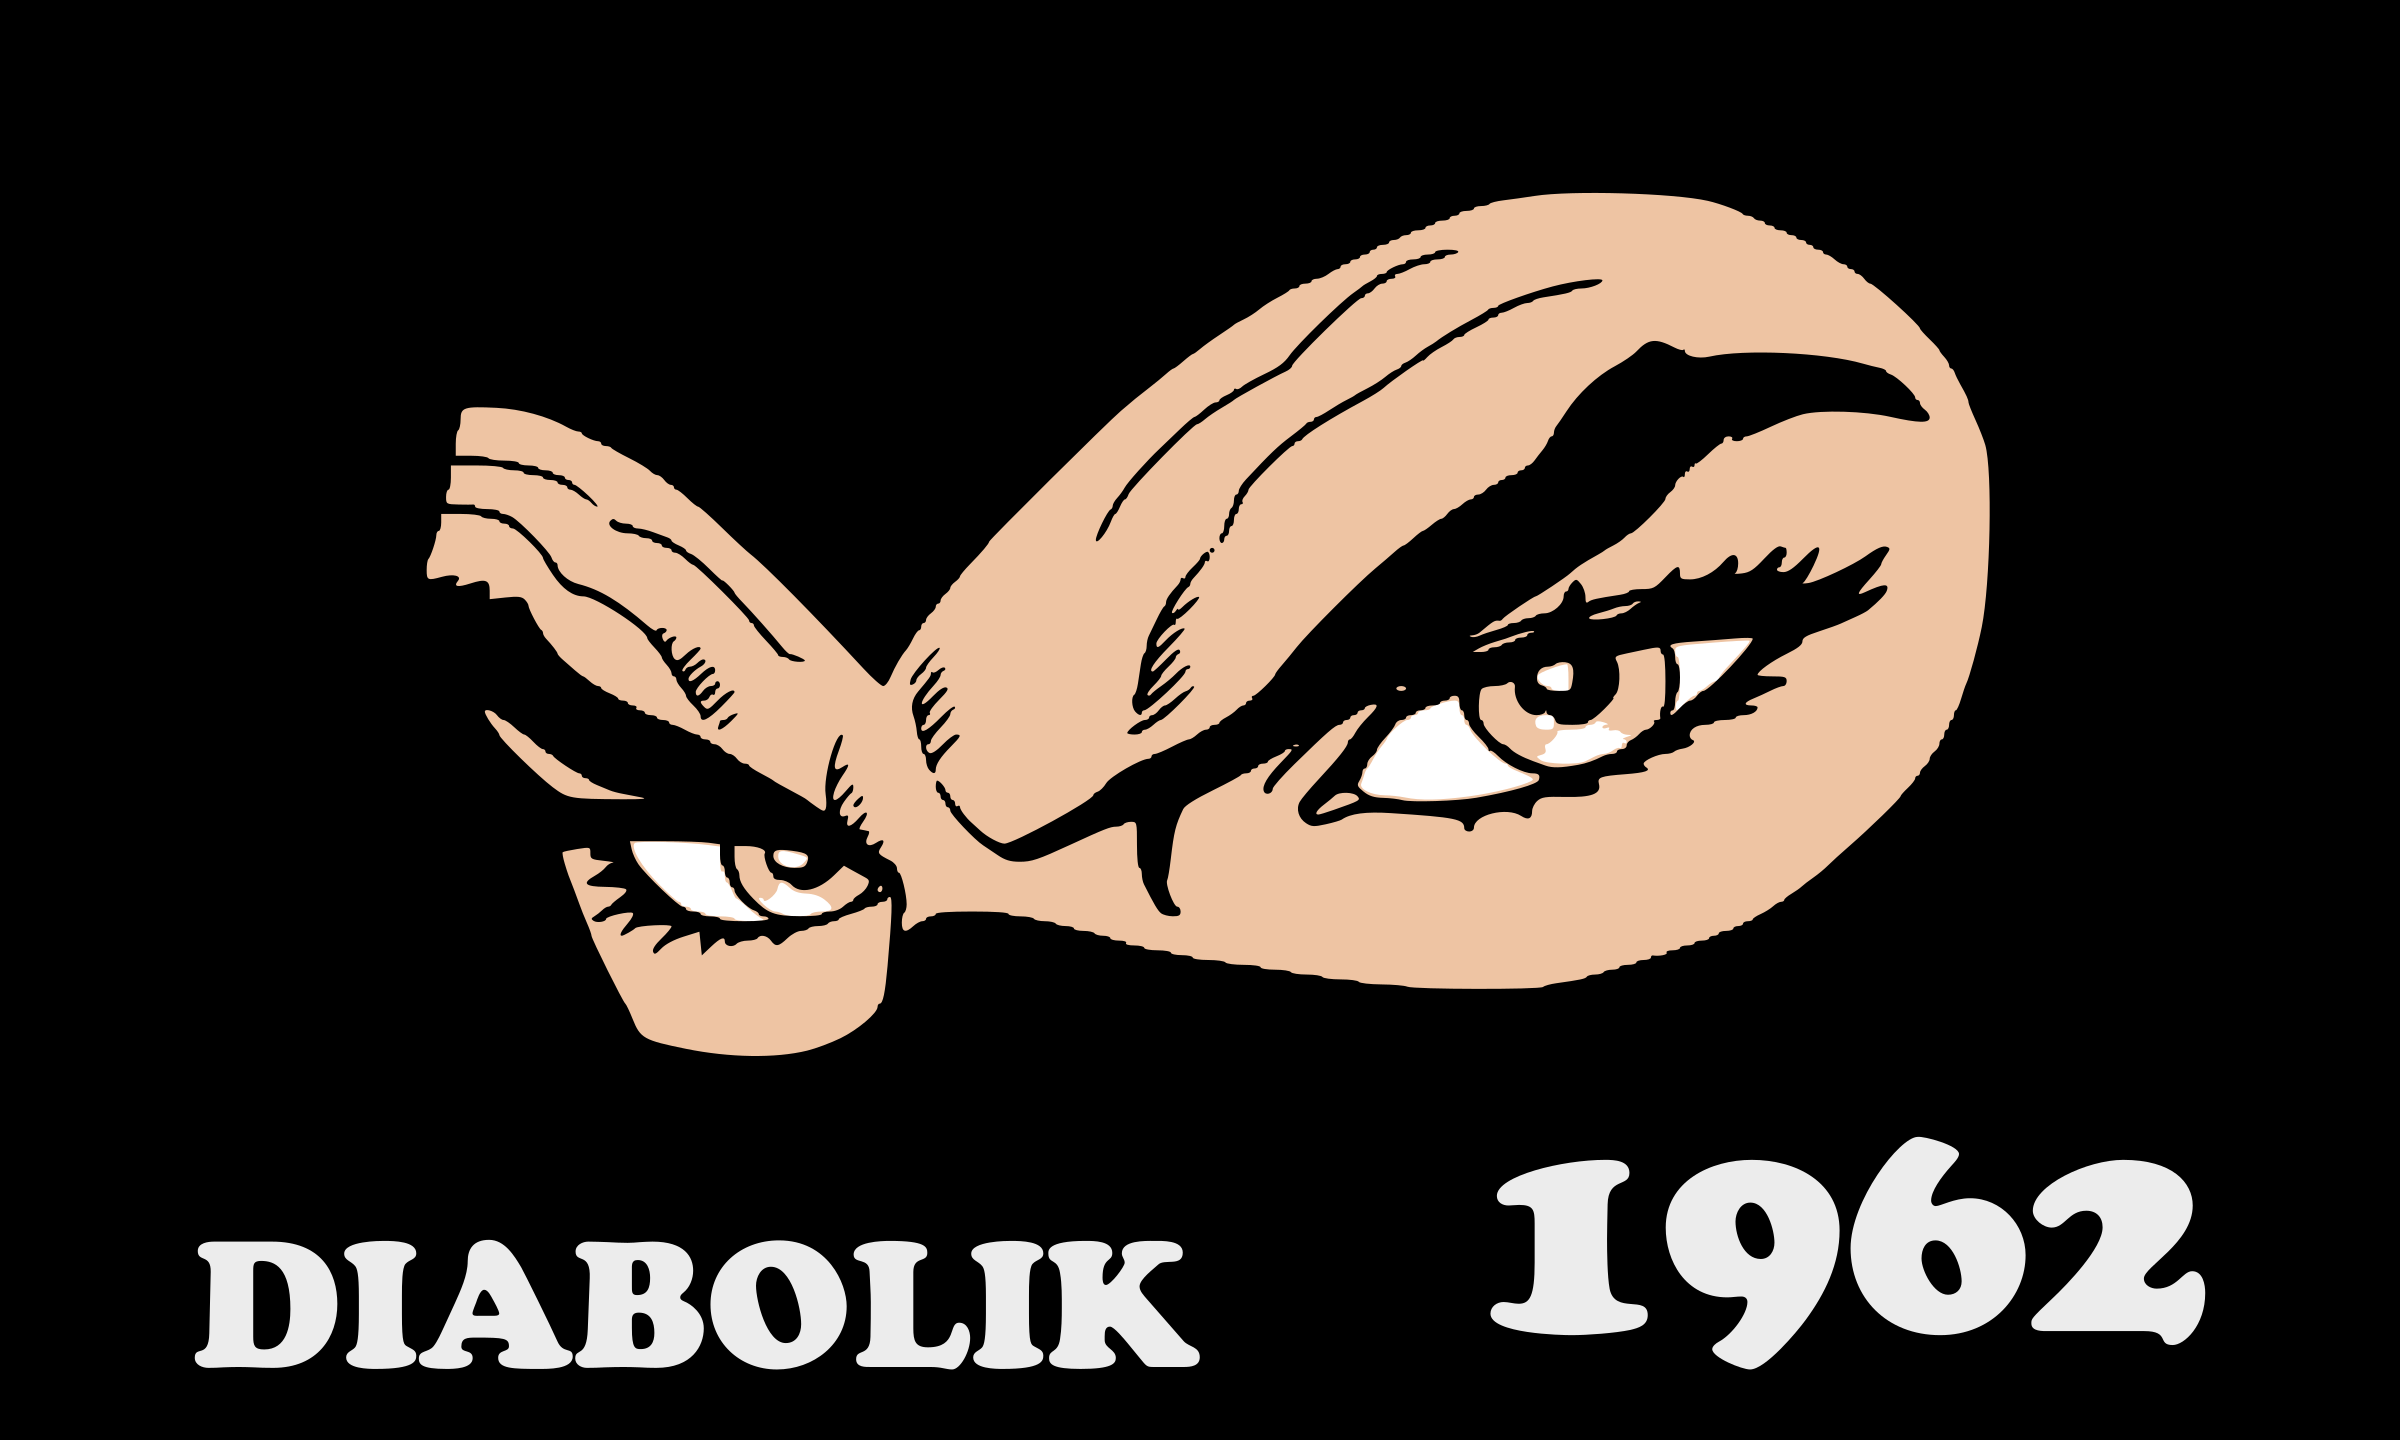 DIABOLIK by dordy